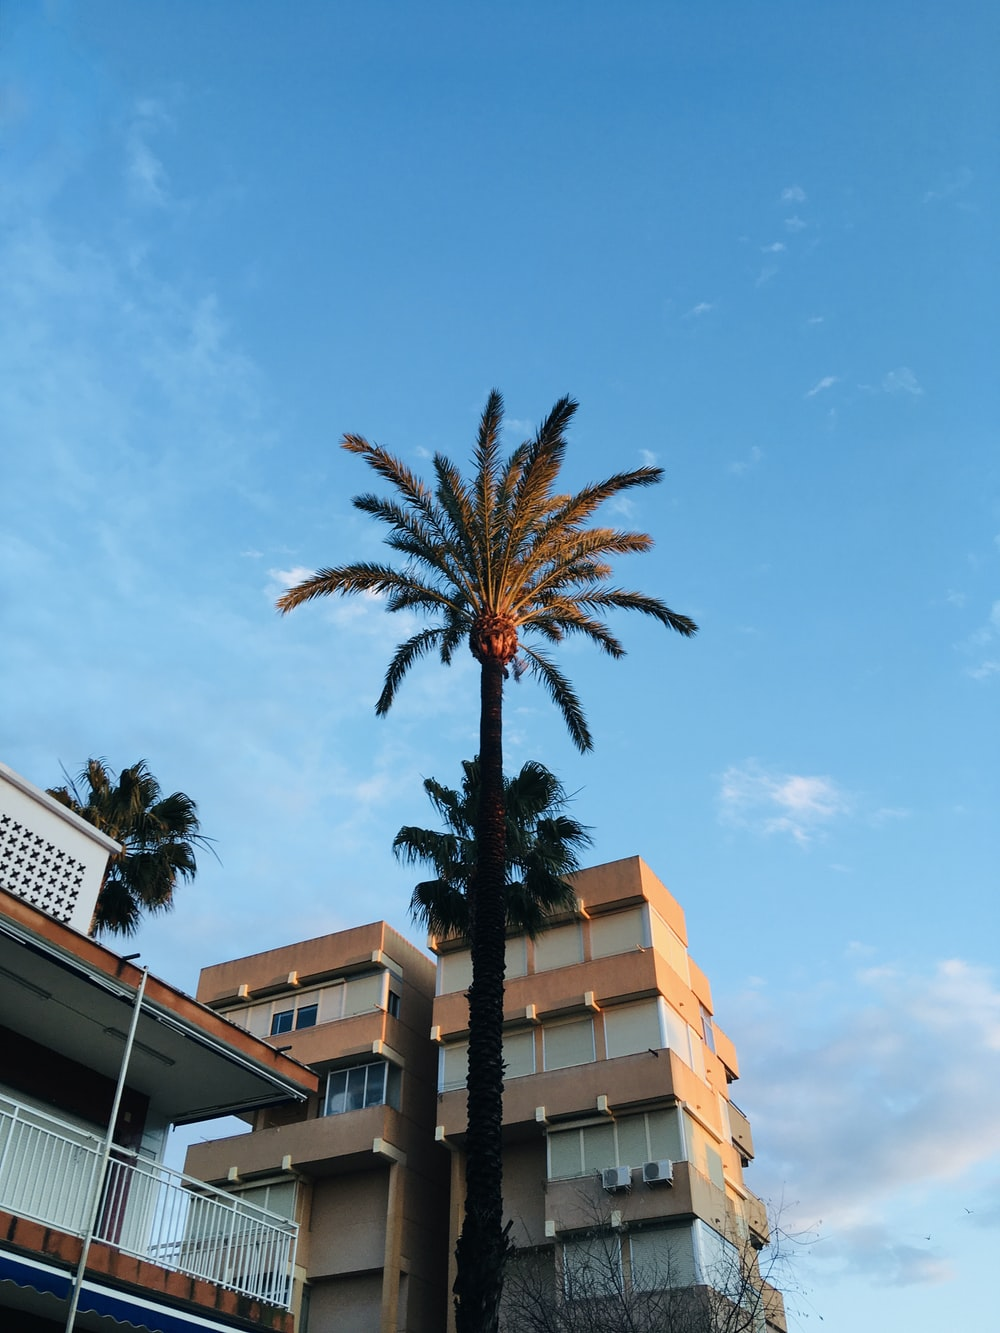 palm tree near brown concrete building during daytime